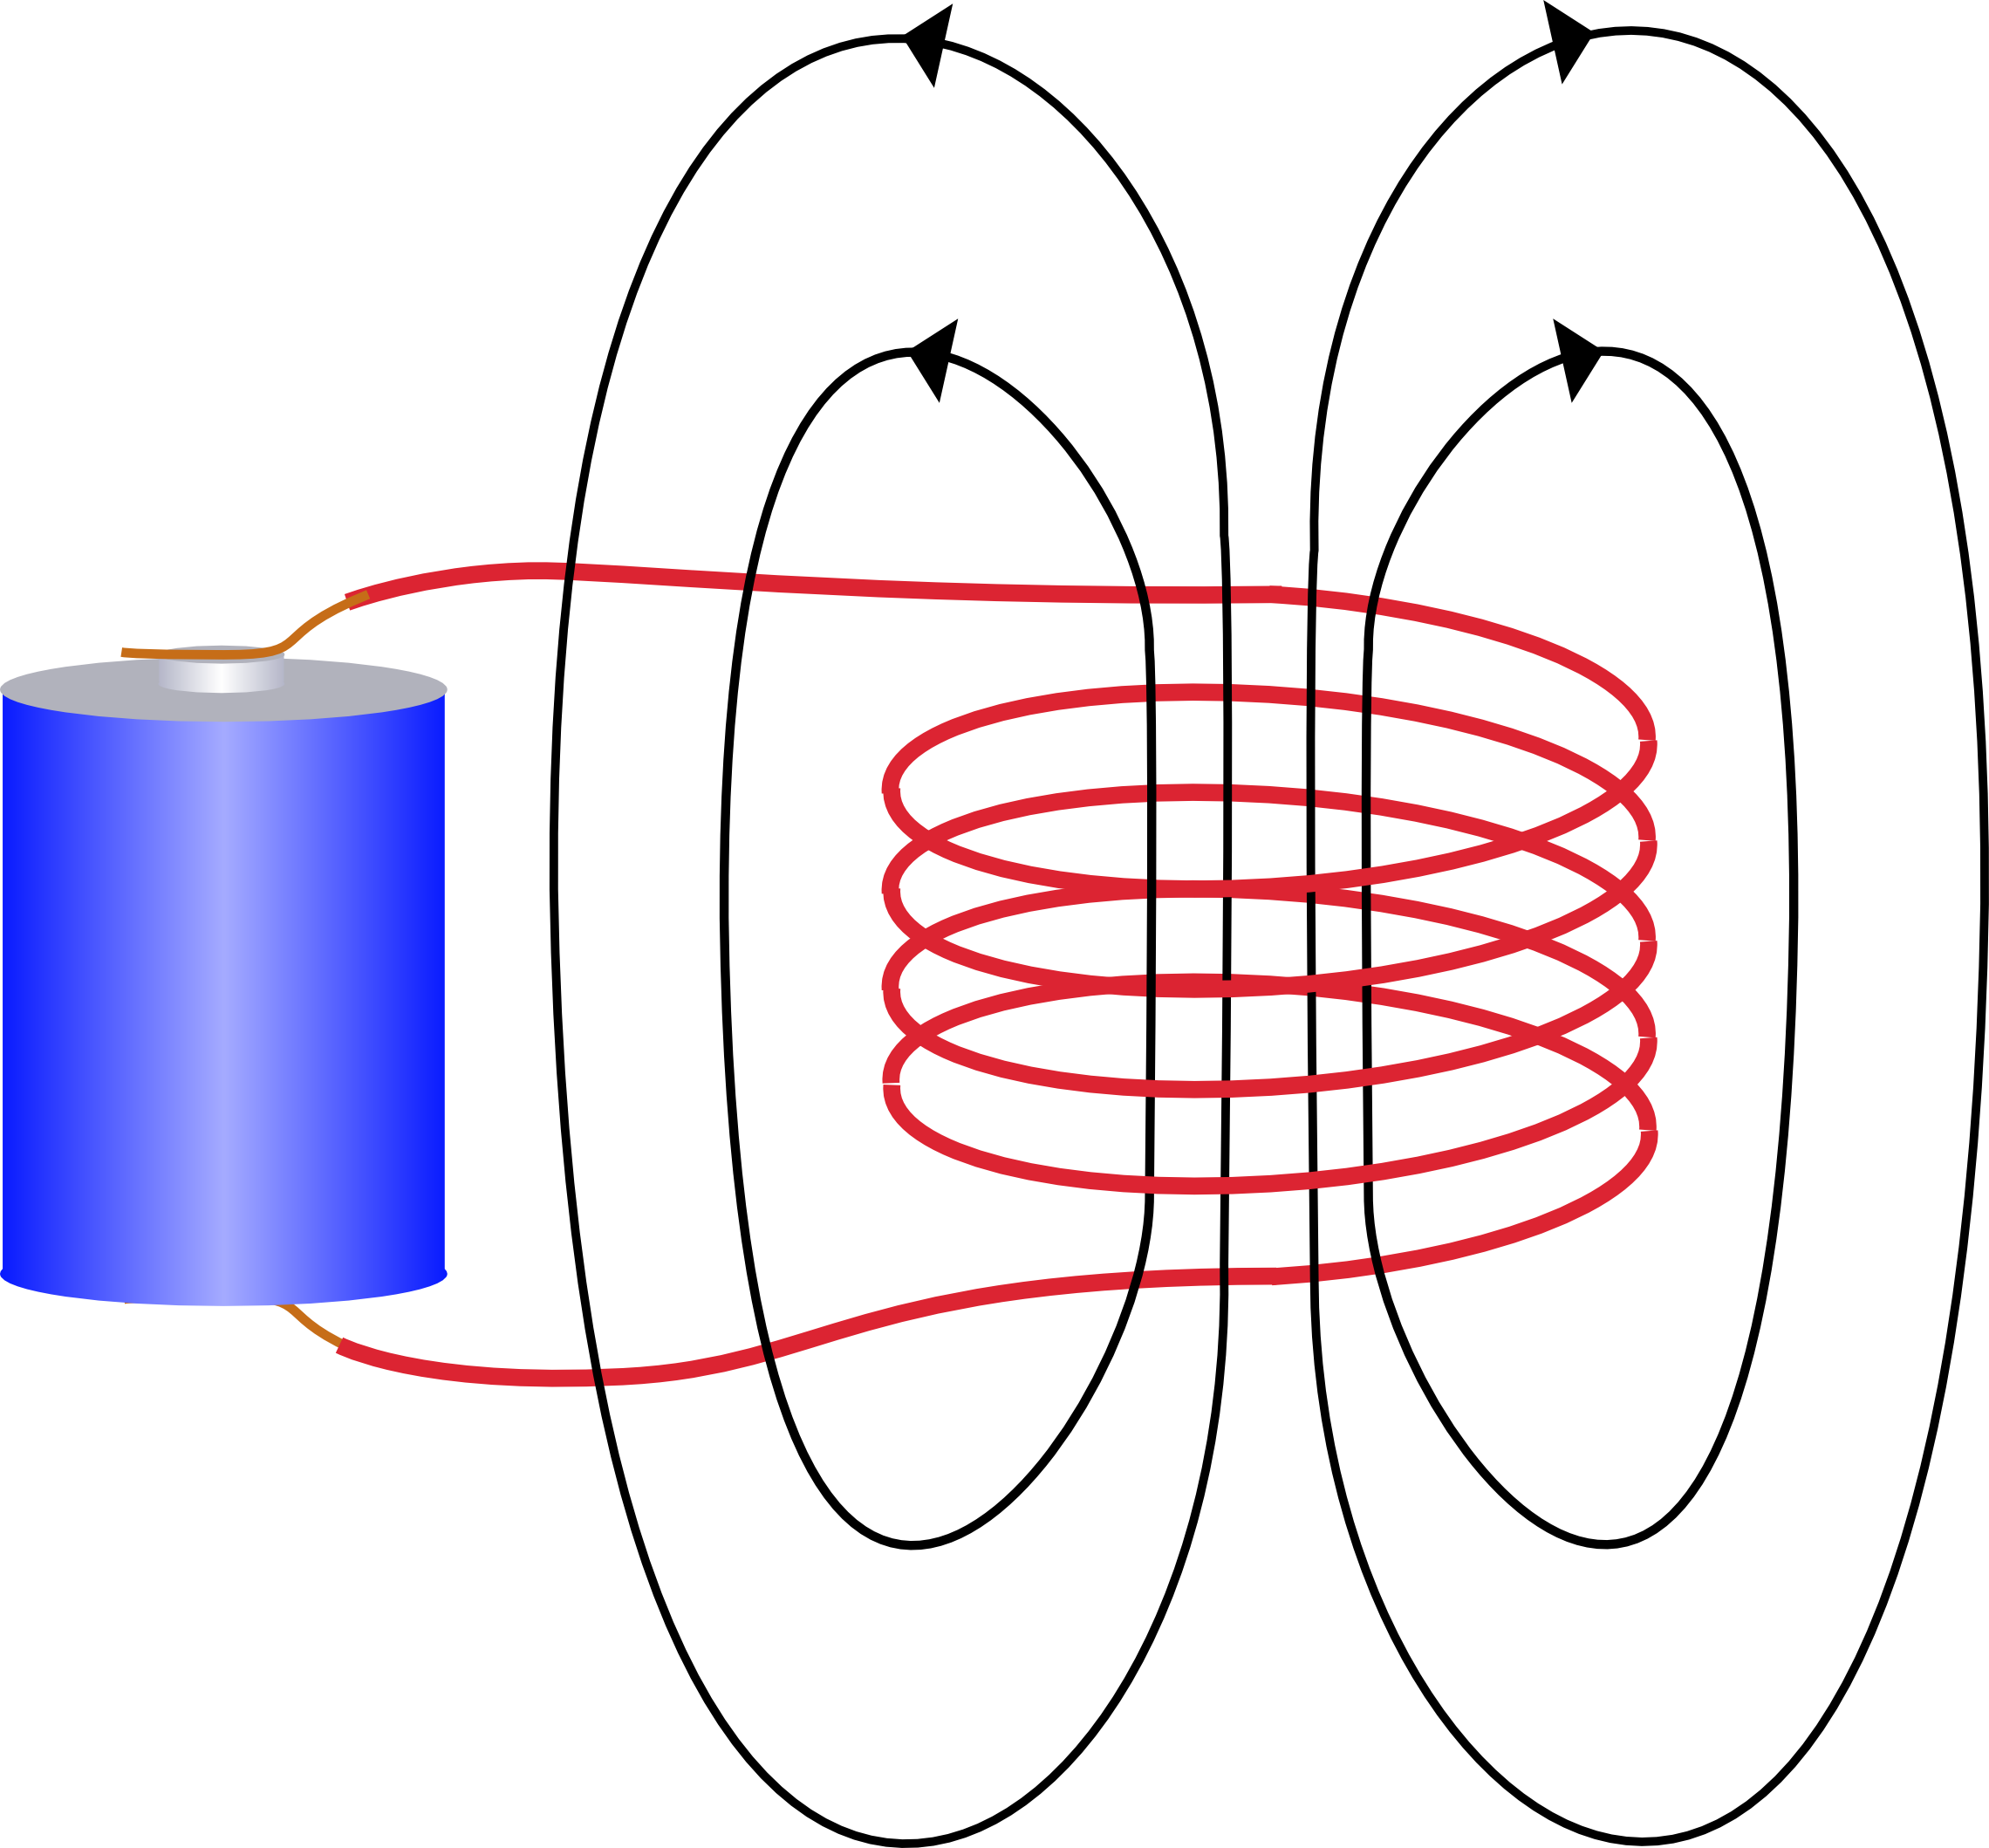 Field from Electromagnet